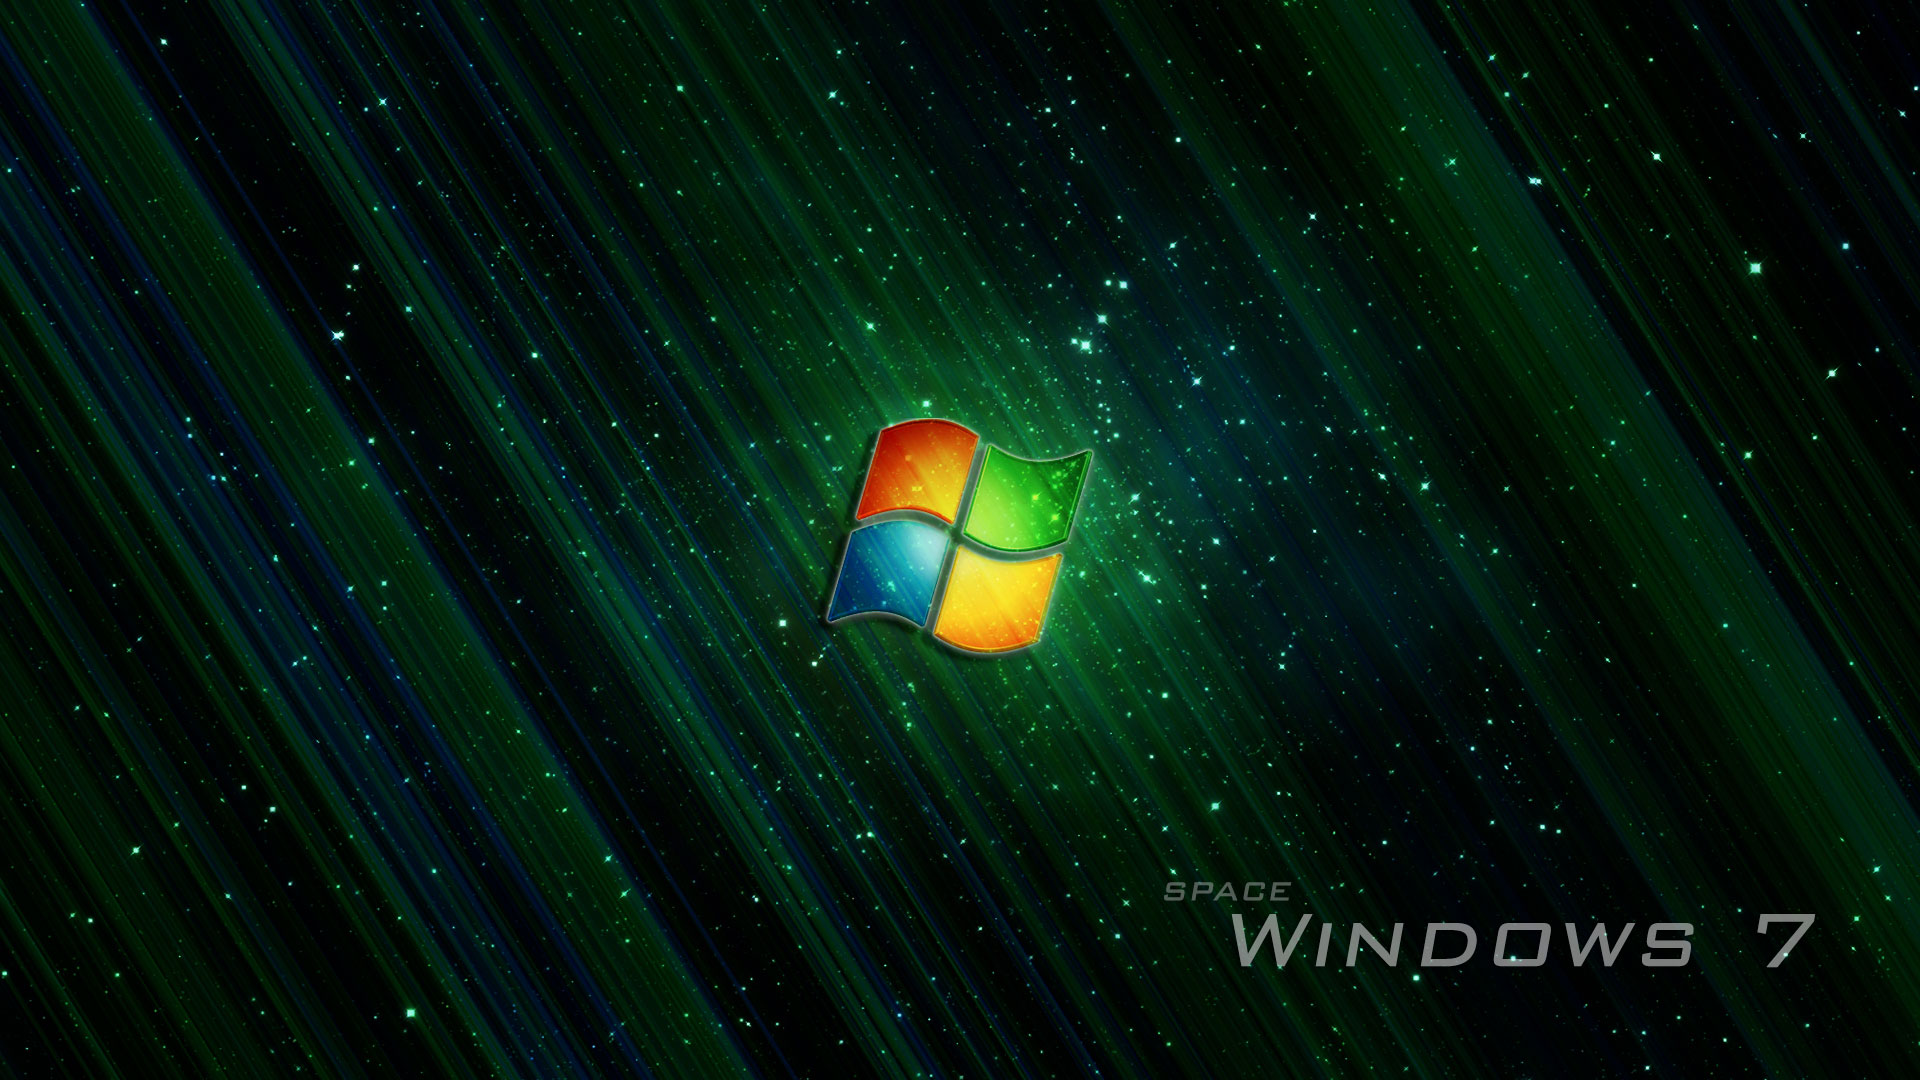 windows space: